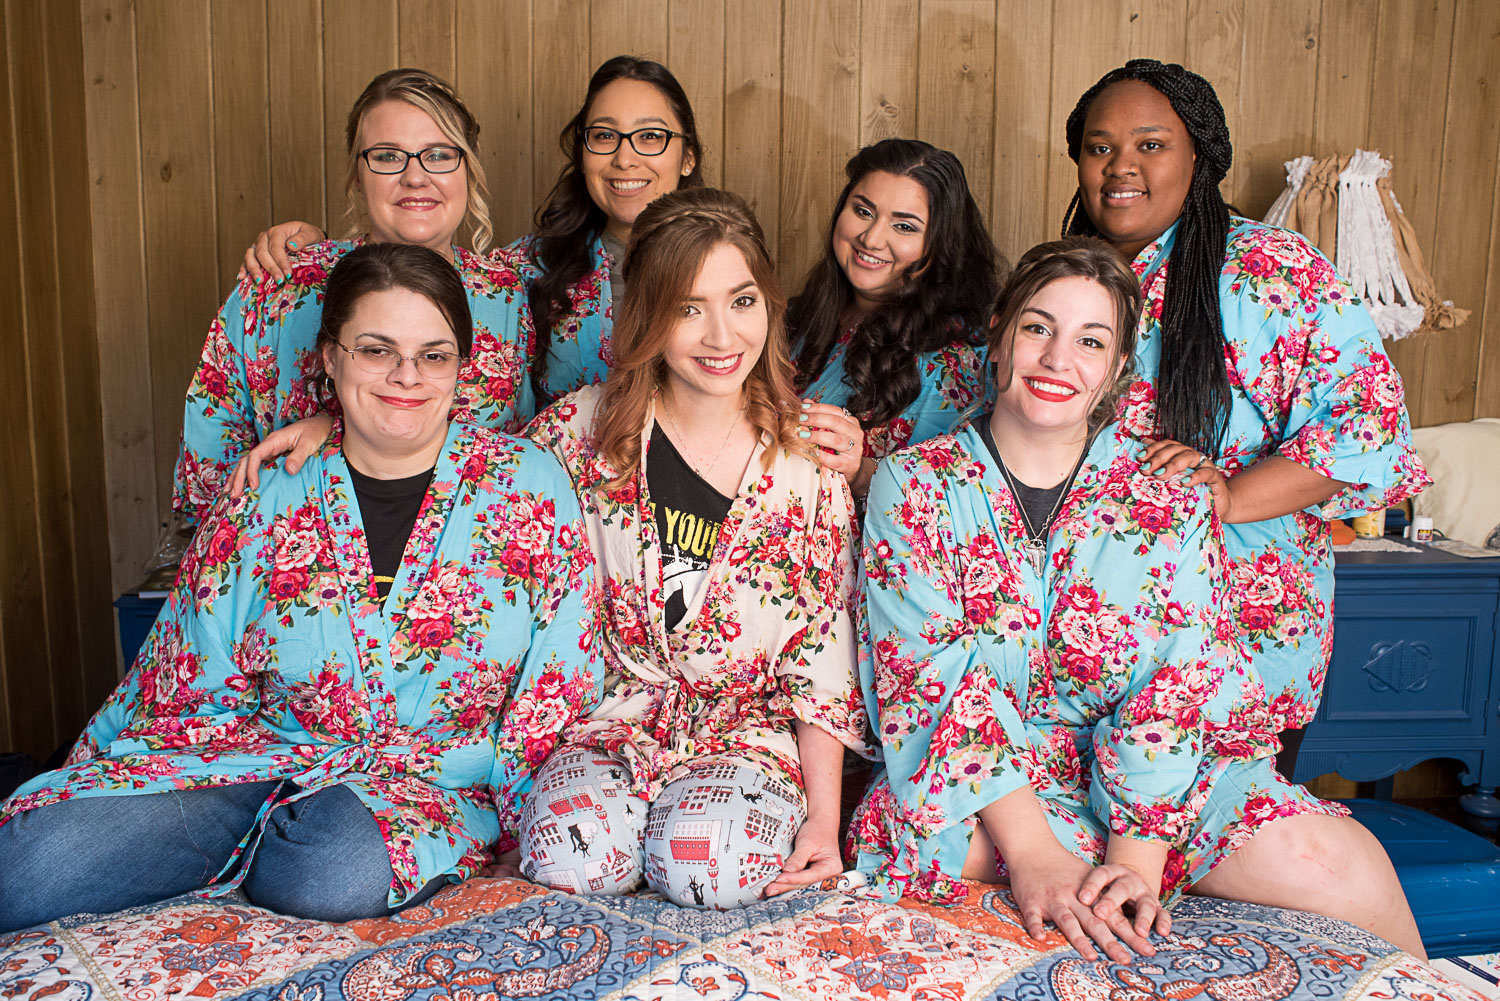 28 bridesmaids in matching robe on bed.jpg